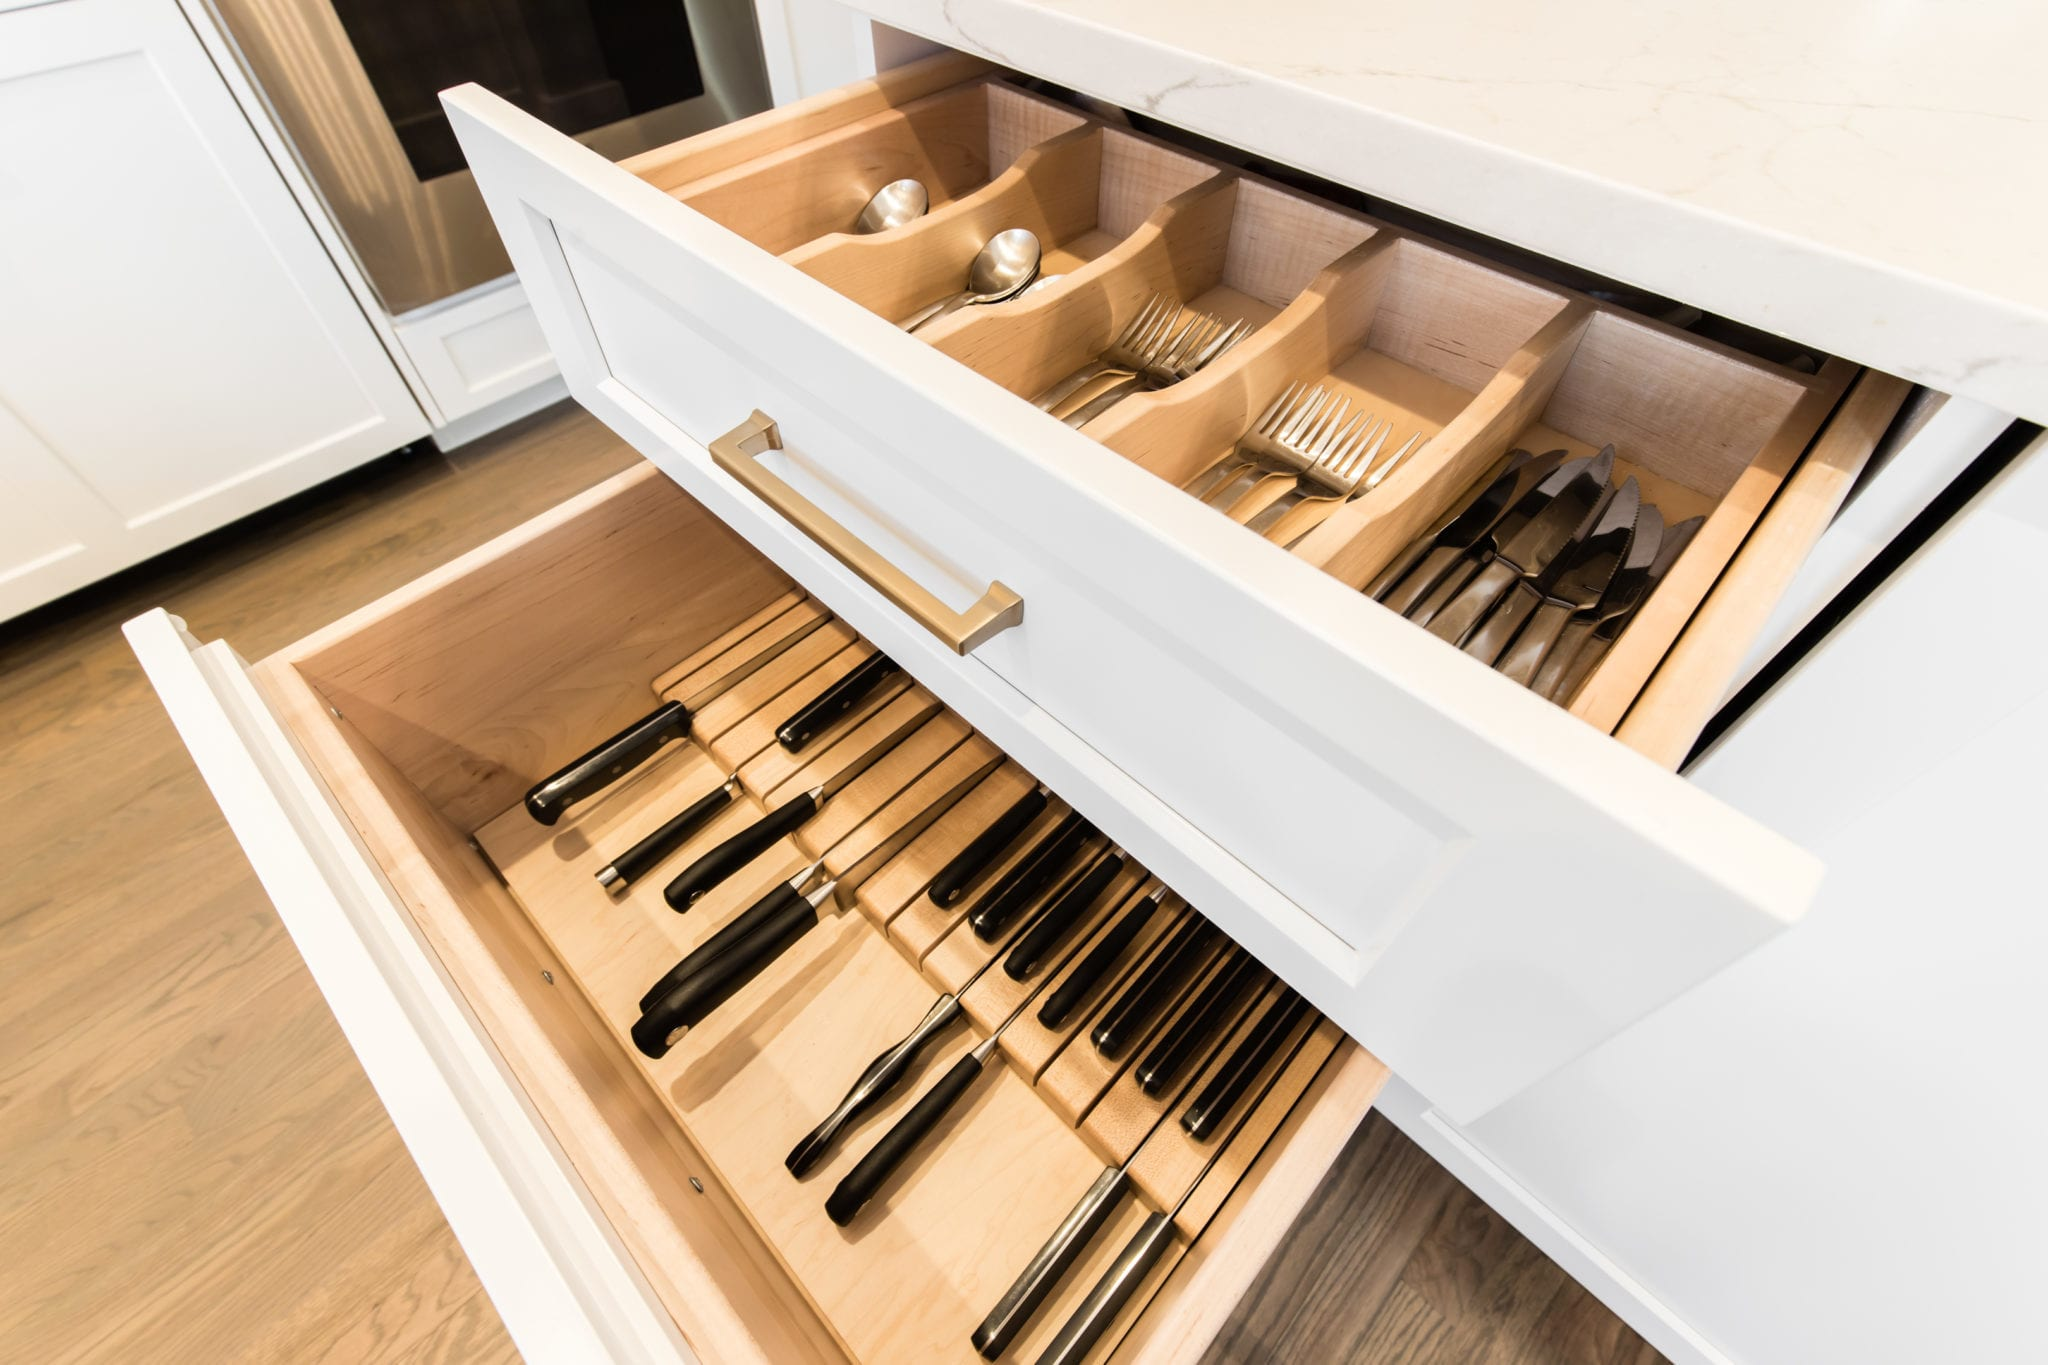 Custom-Cabinet-Drawers-After-Kitchen-Remodel-Turtle-Creek-Texas-Townhome-Condo